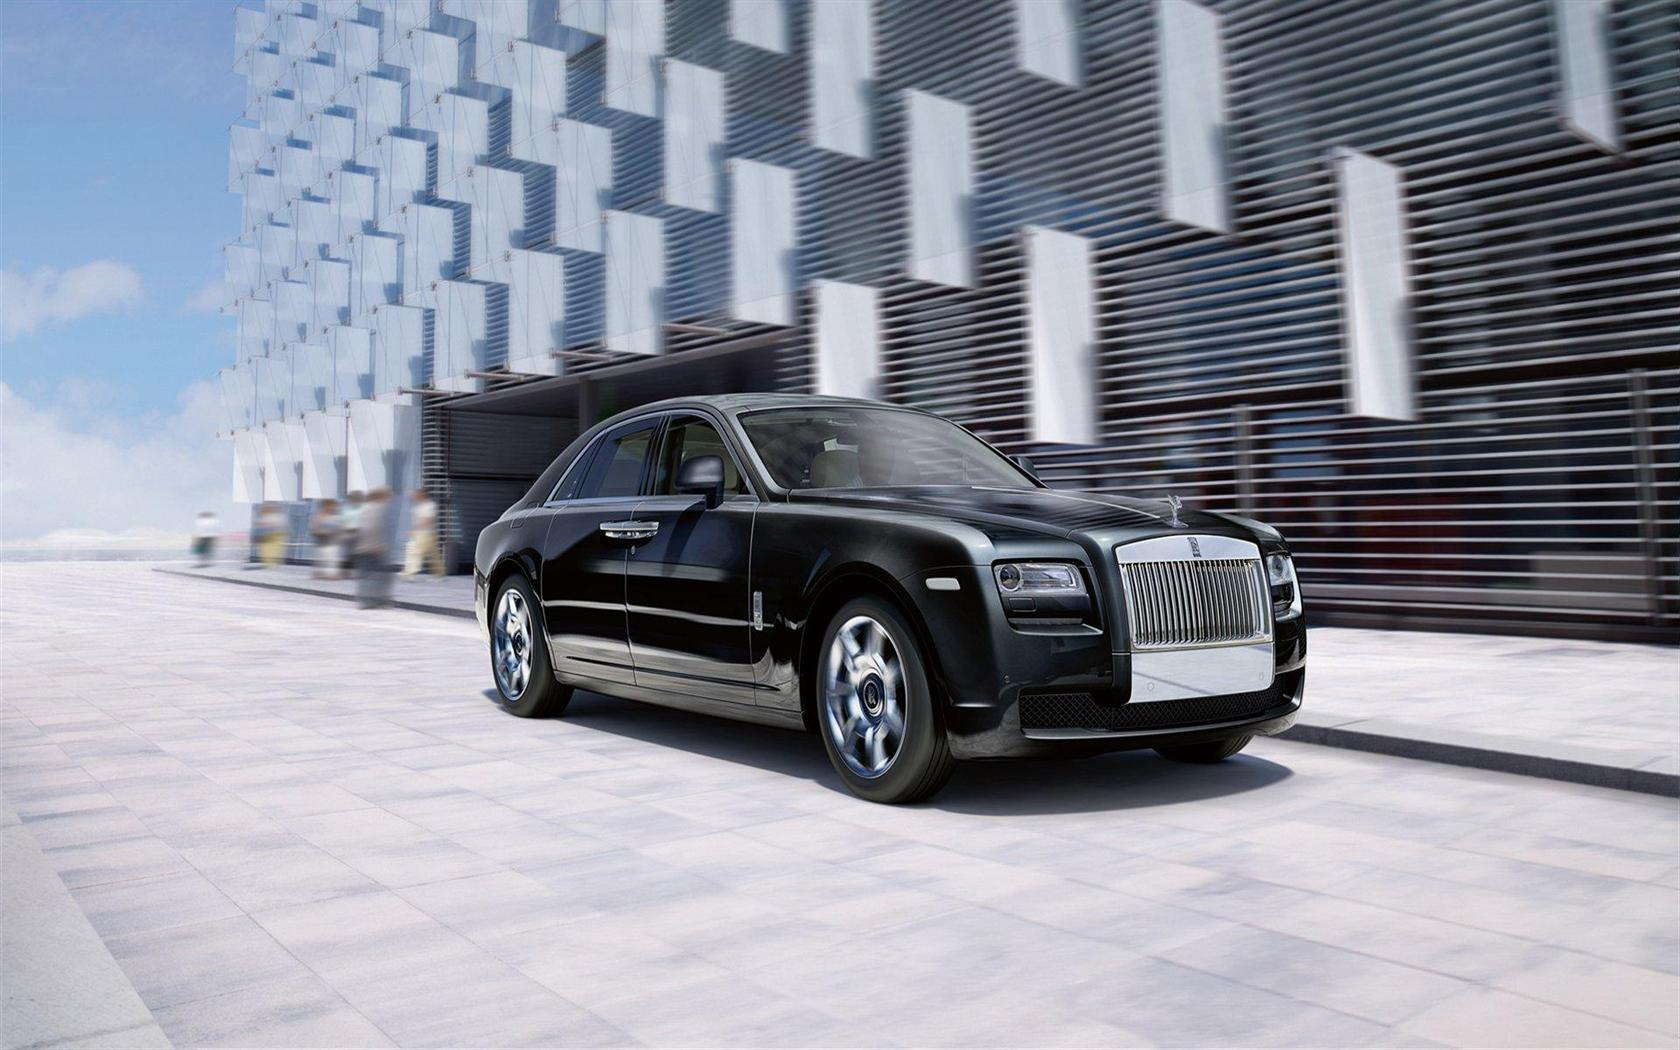 2012 Rolls royce Ghost #3